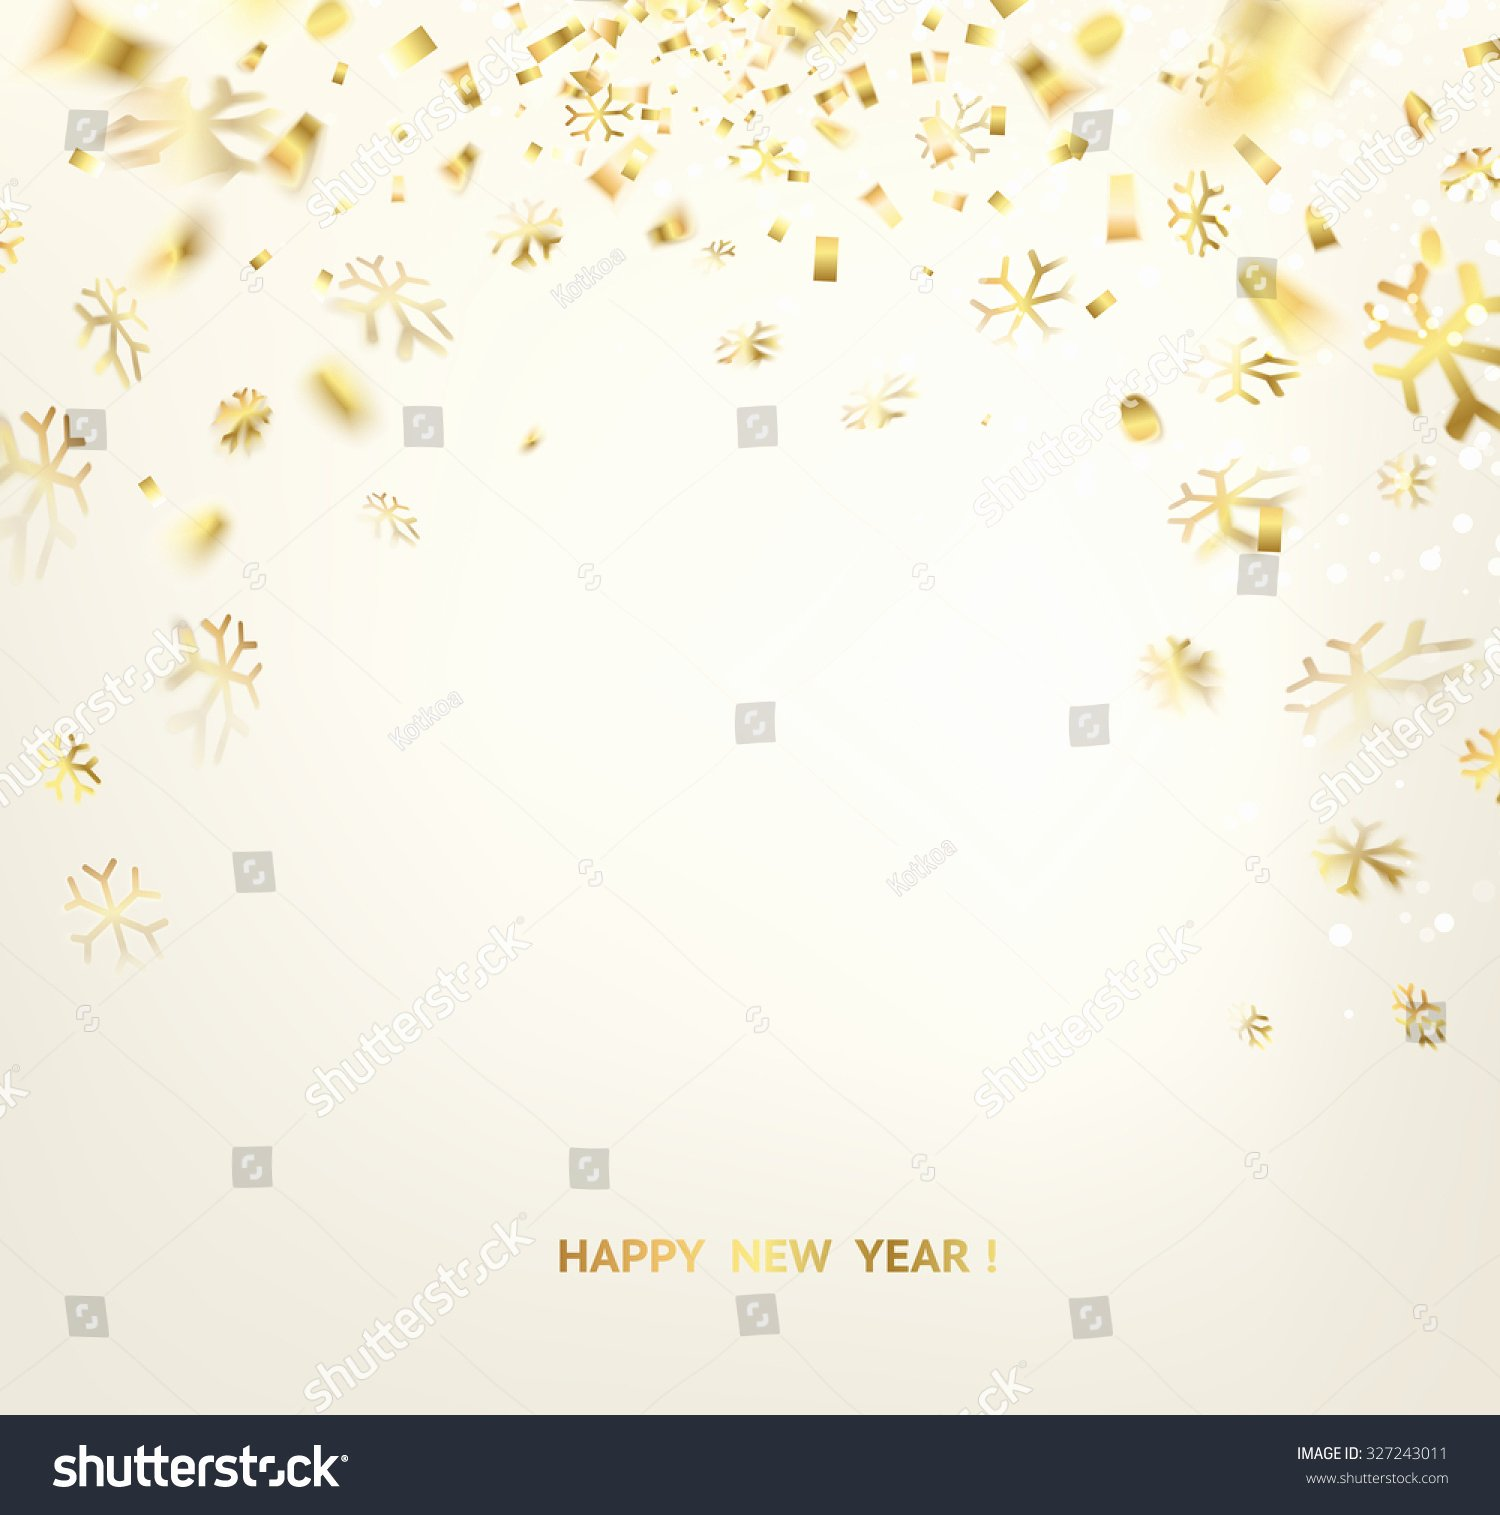 New Year Cards Templates Best Of Happy New Year Card Template Over Stock Vector Shutterstock